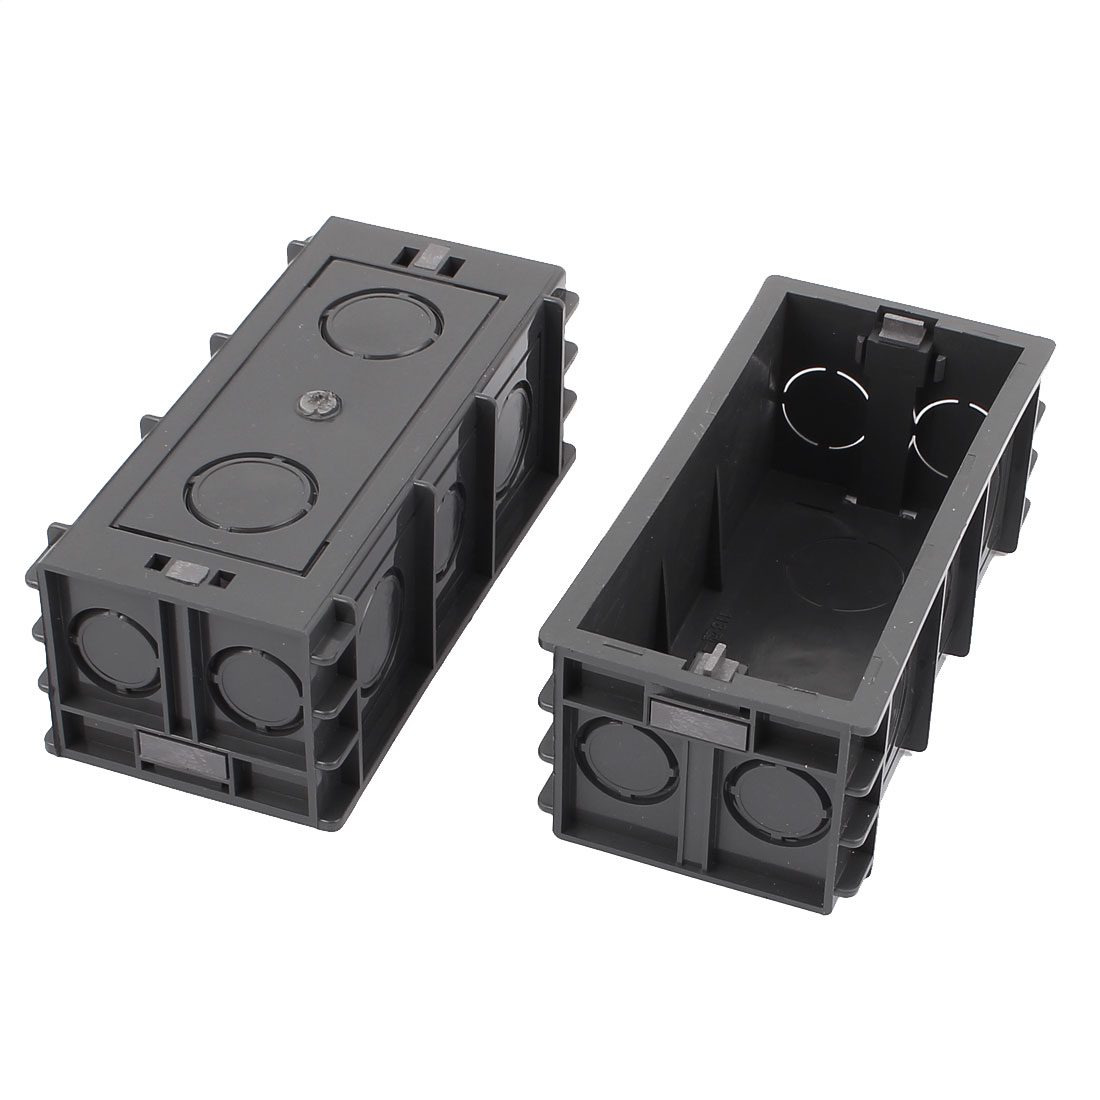 2 Pcs Rectangle Design 178mmx65mmx45mm Switch Pattress Back Box Case Black